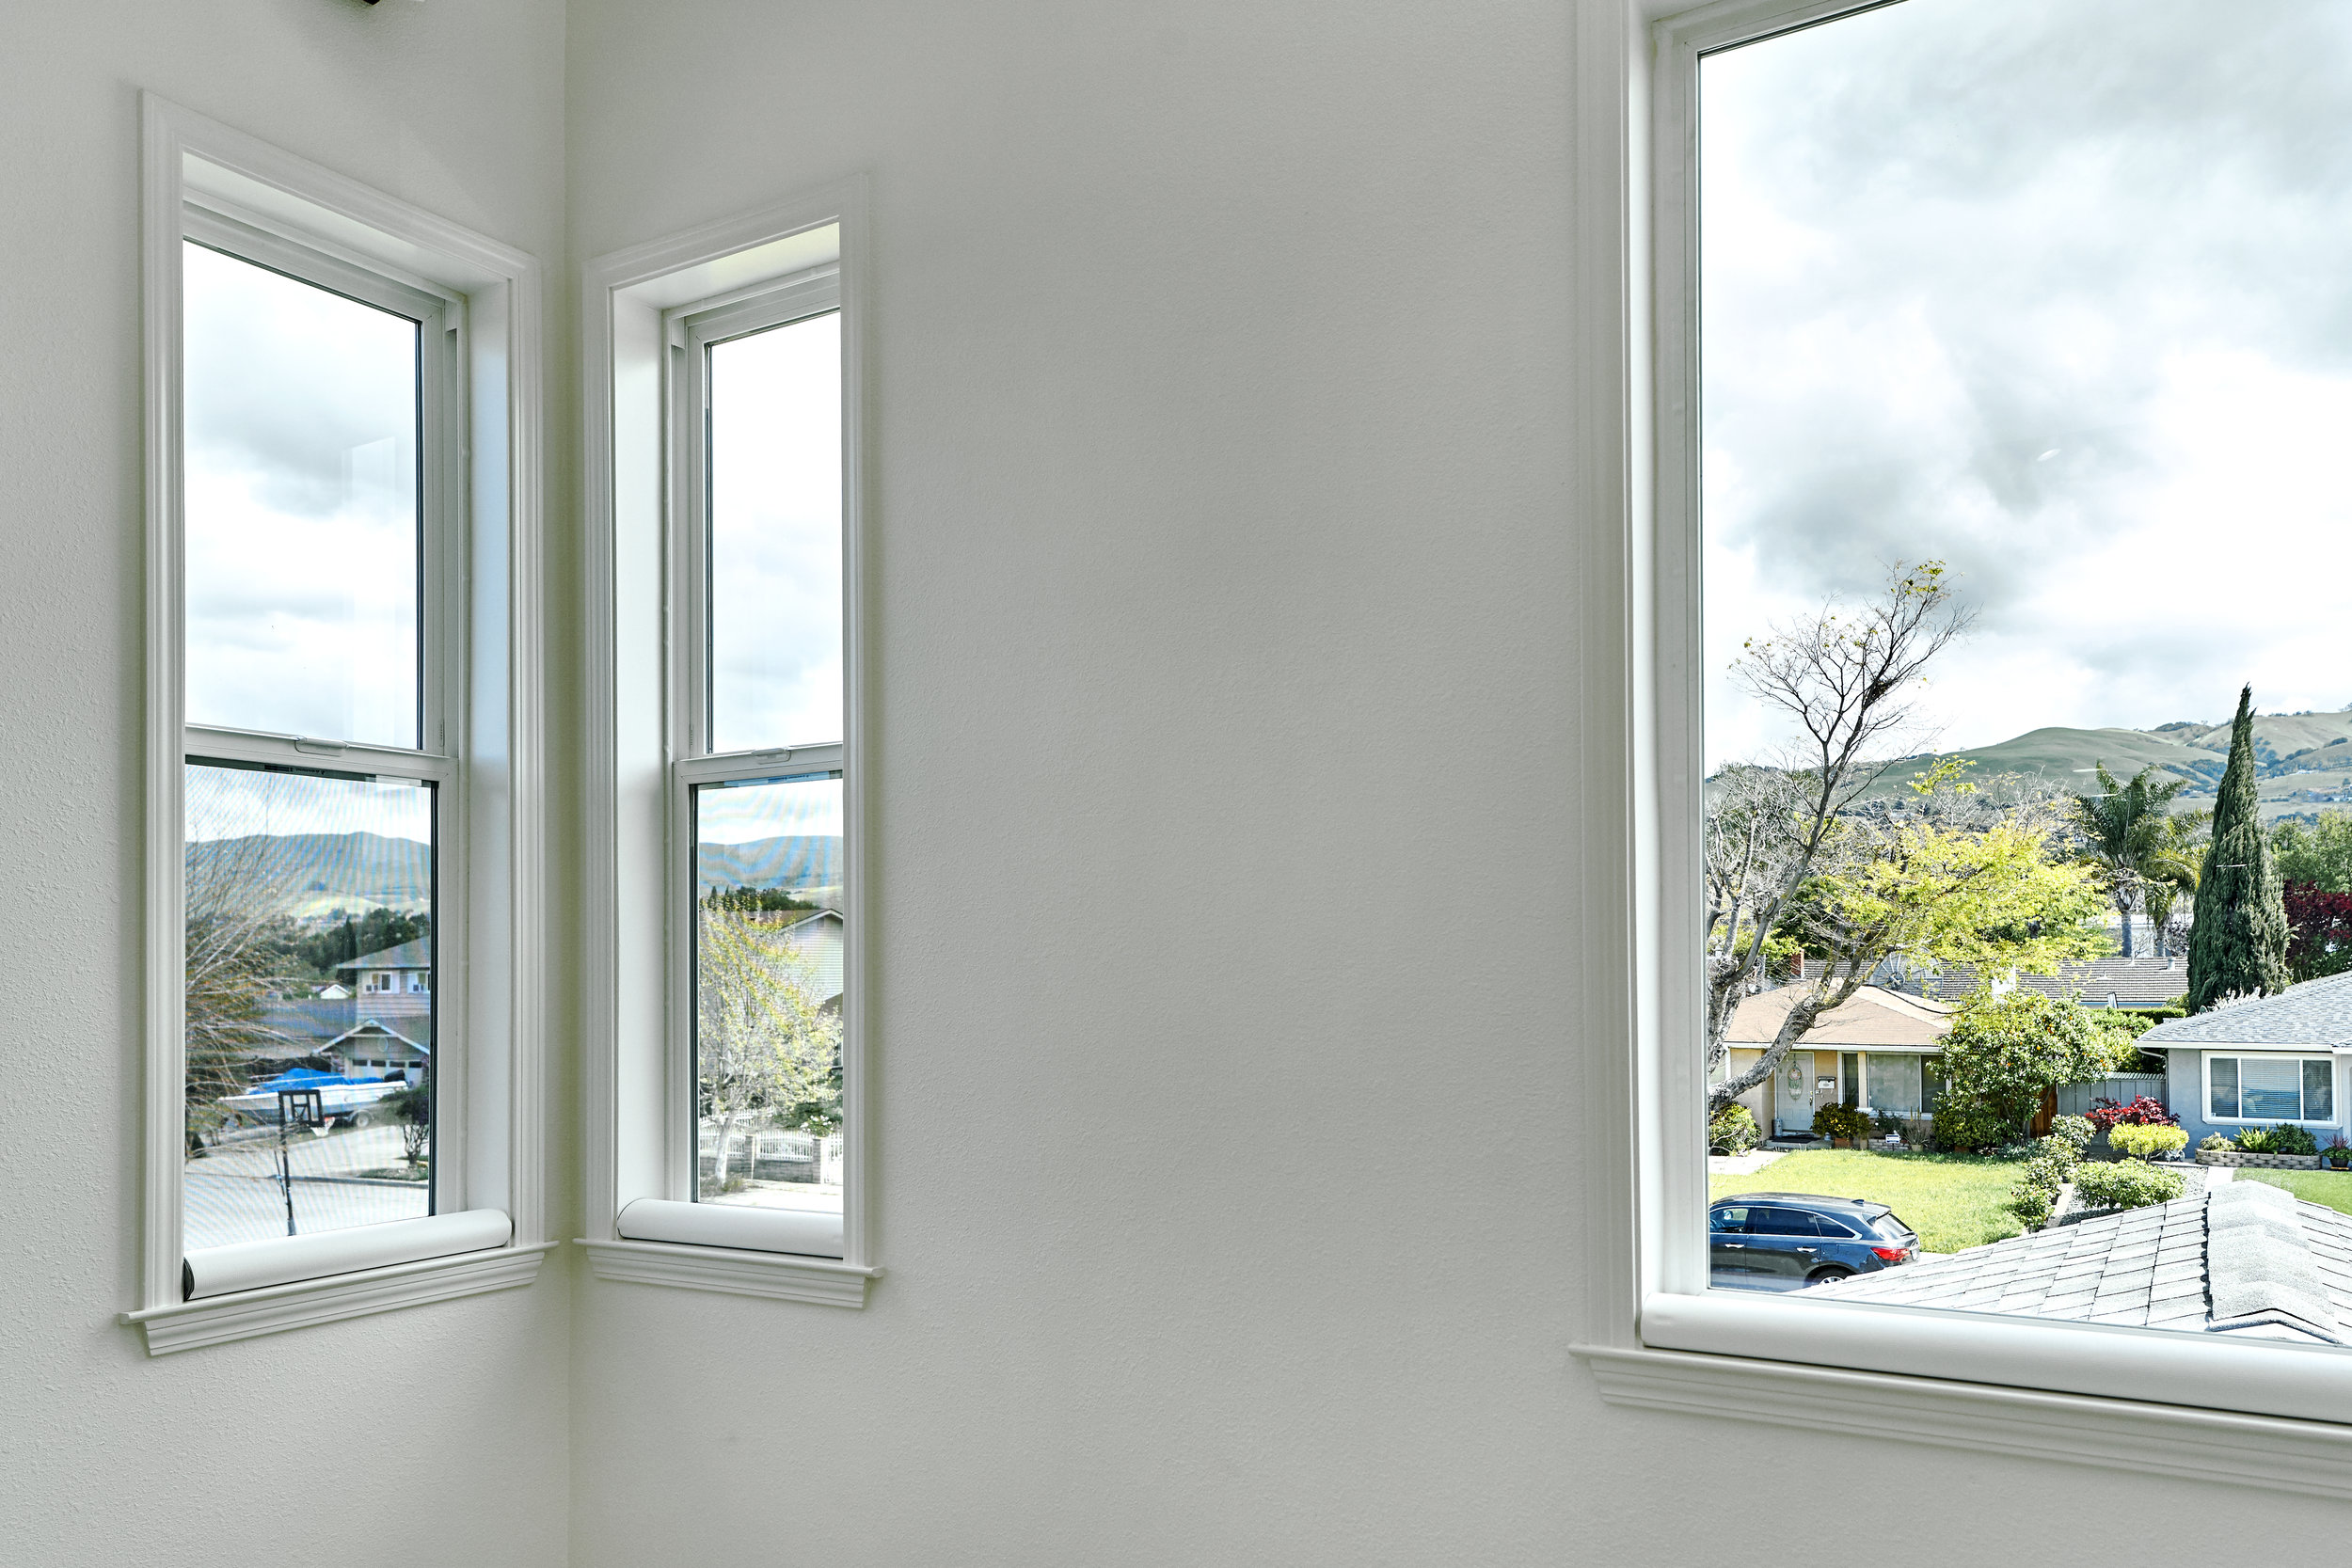 Corner windows to create and highlight the view.